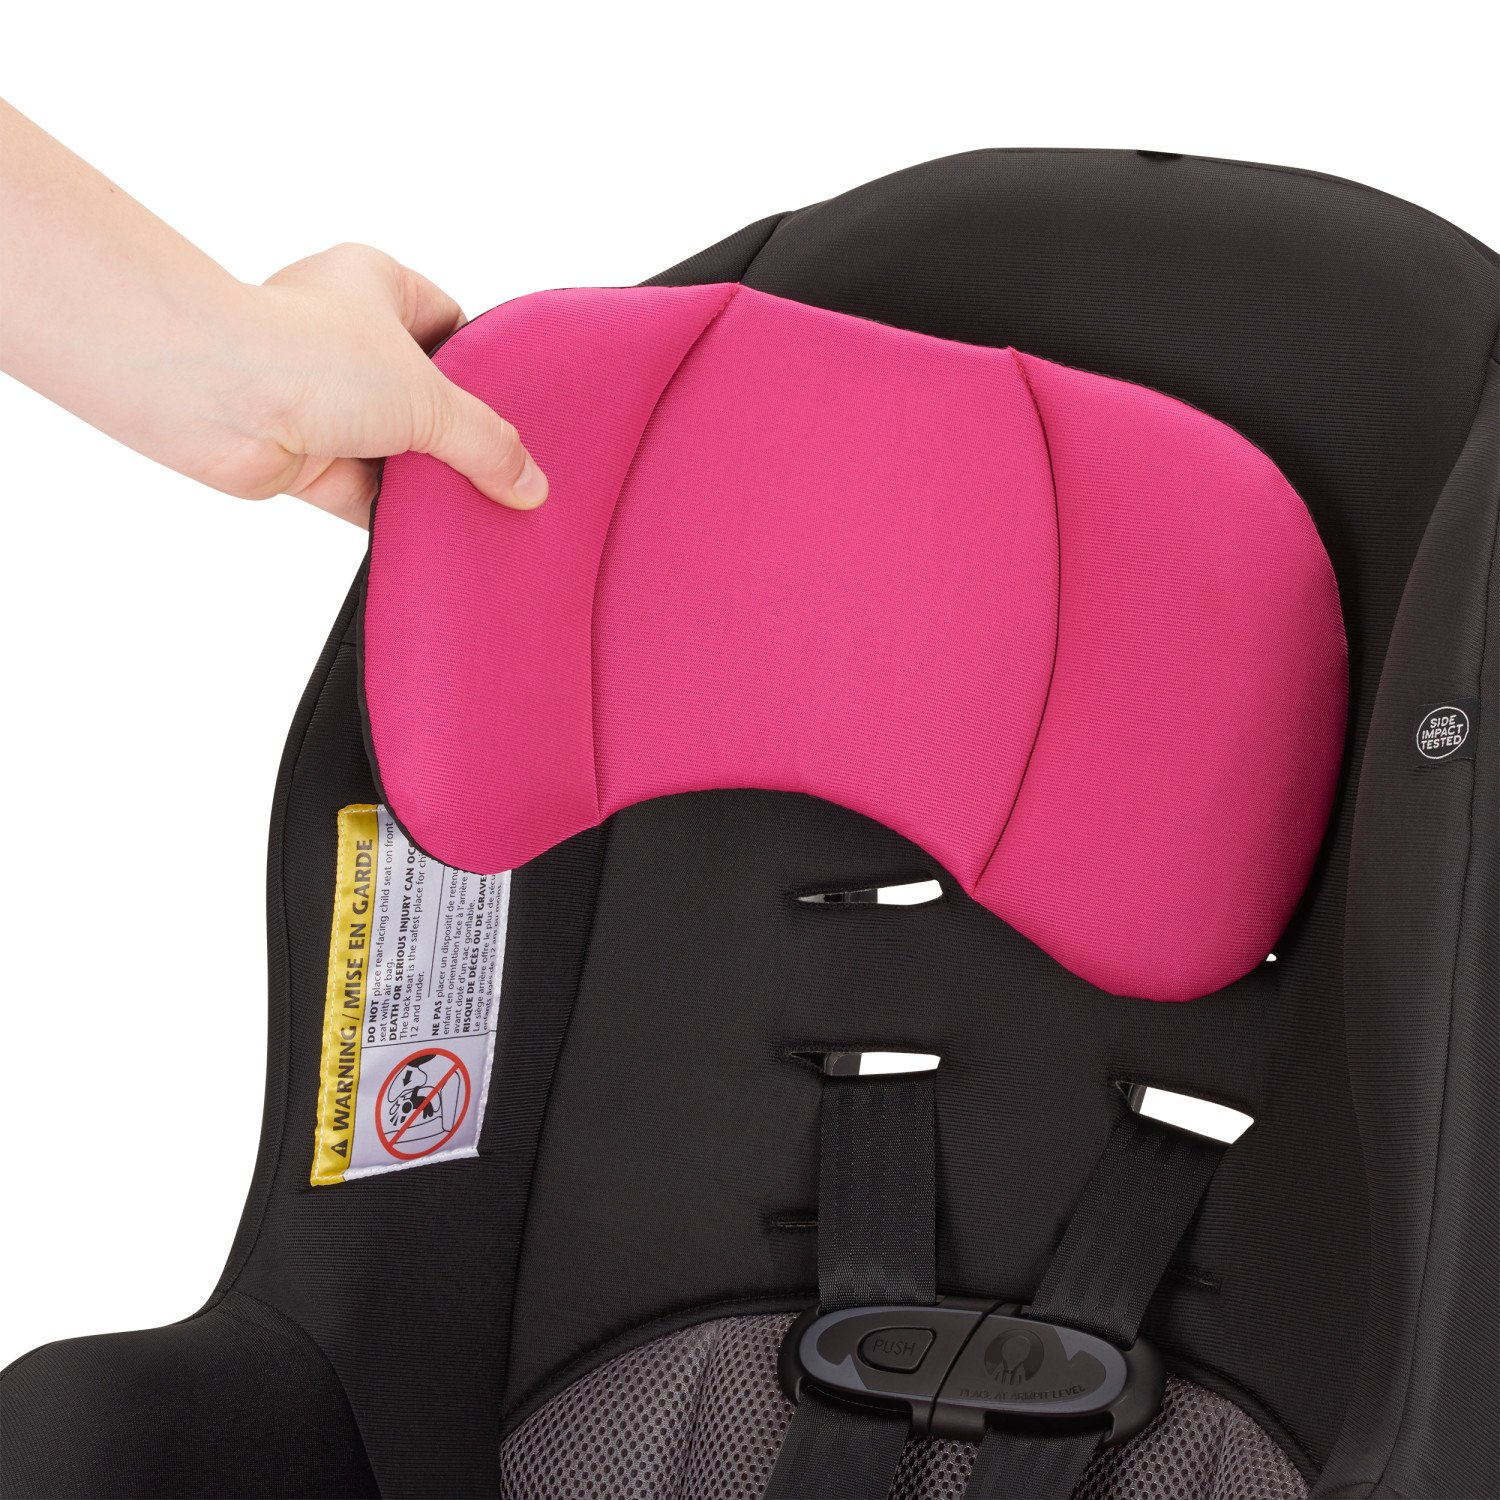 Evenflo Tribute Lx Convertible Car Seat Asiento De Seguridad